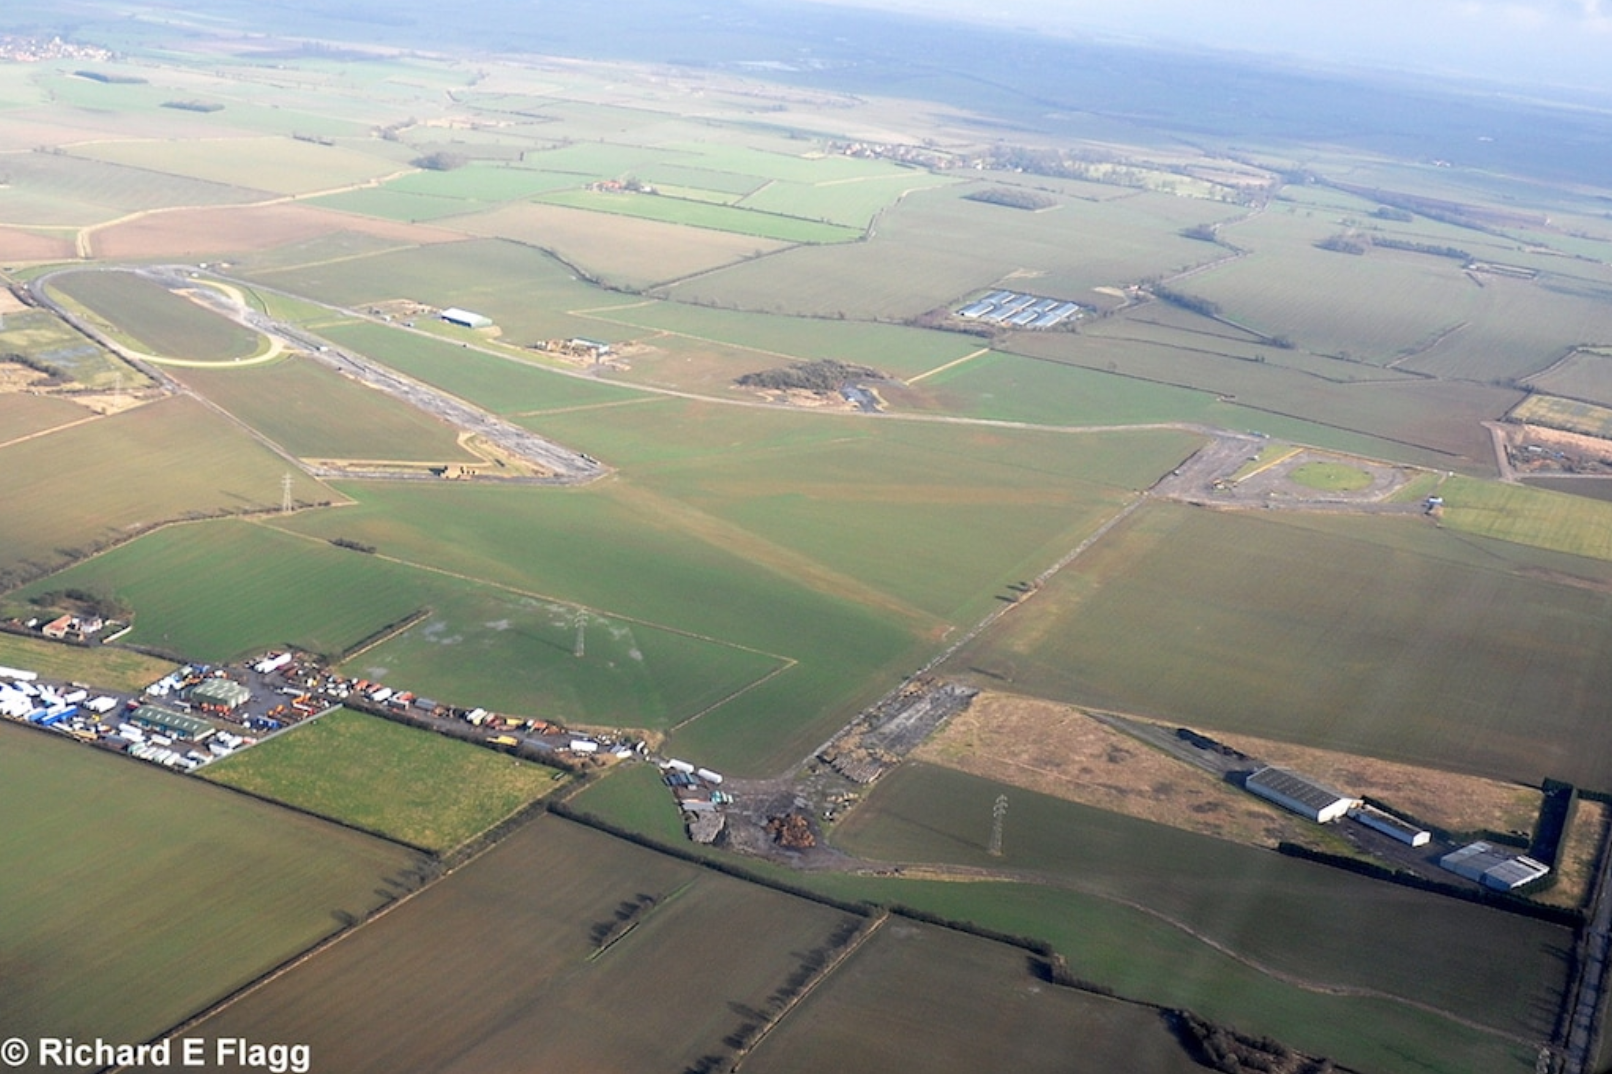 005Aerial view of RAF Blyton Airfield - 12 February 2011.png